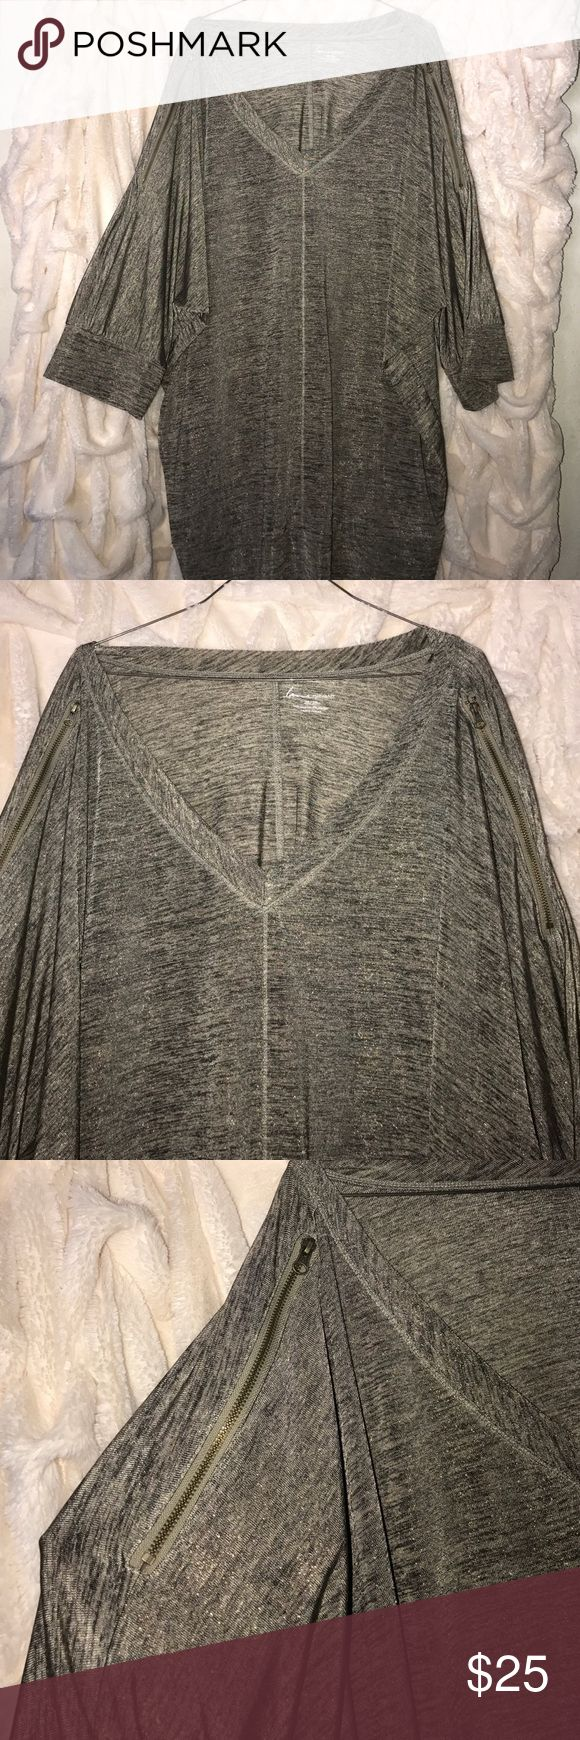 Gold metallic batwing shirt Lane Bryant gold metallic batwing shirt with zippers on arms that allow to wear open or closed. Really elegant and dressy Lane Bryant Tops Blouses